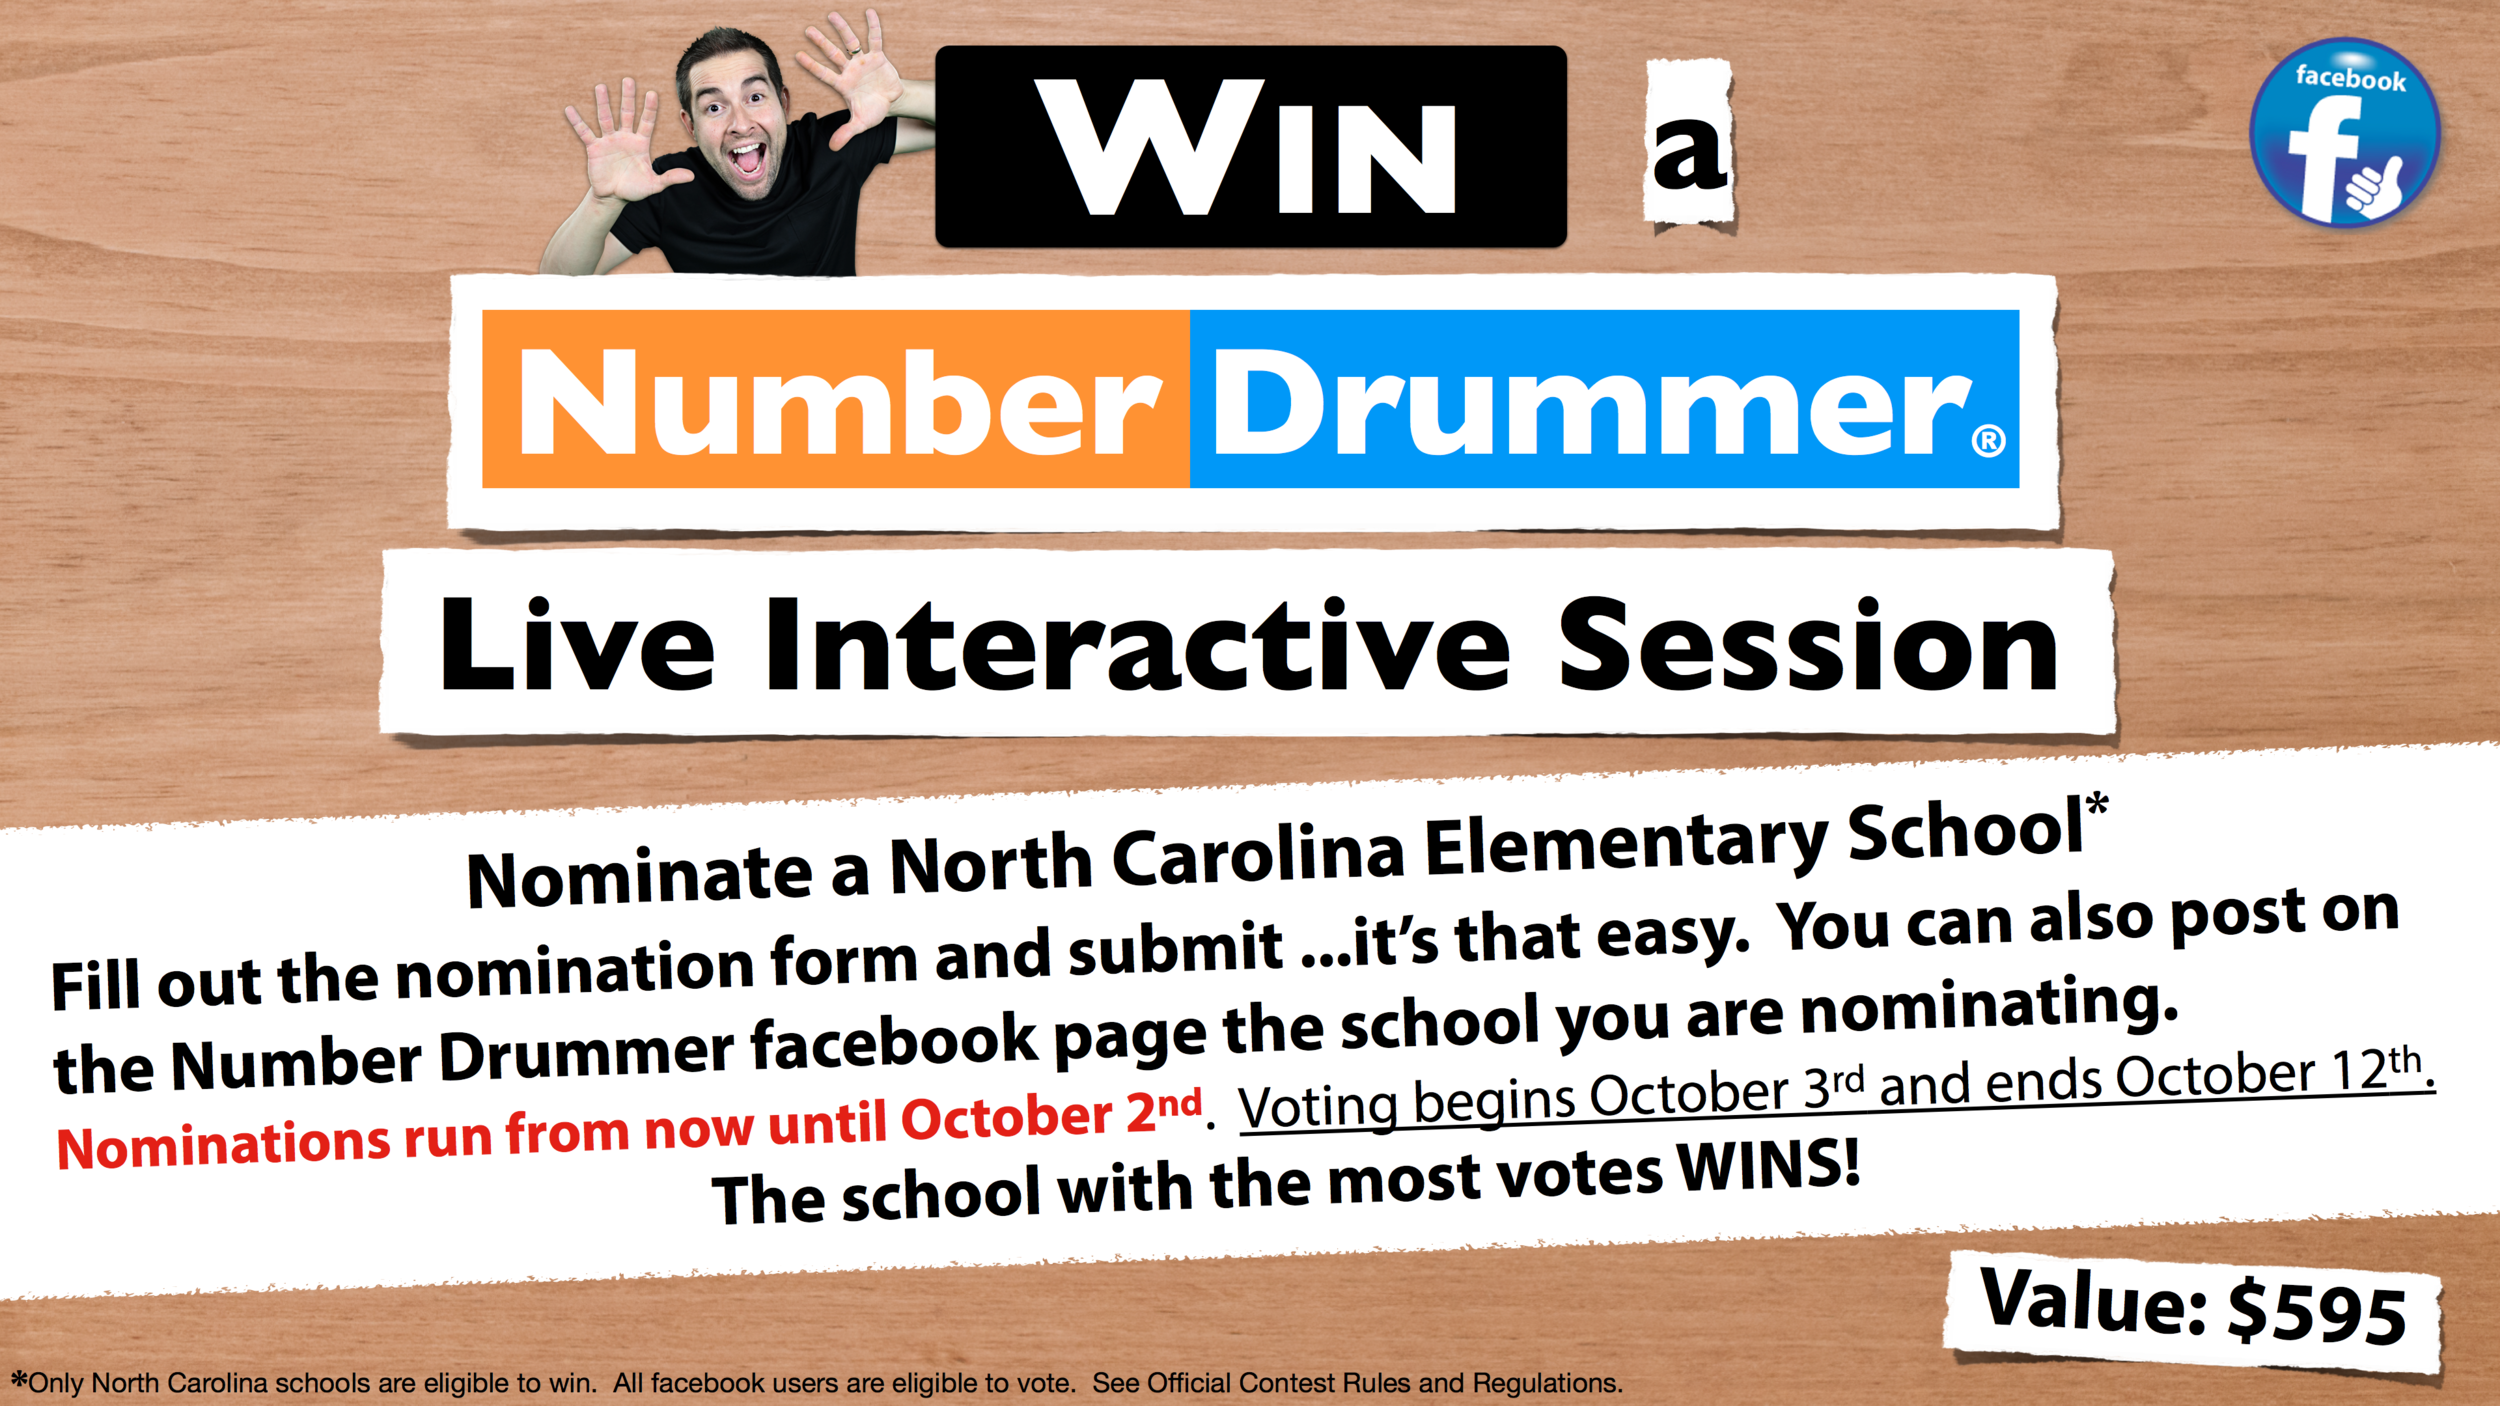 Voting begins Friday, October 3rd, 2014 and ends Sunday, October 12th, 2014.  Voting takes place on the Number Drummer facebook page only.  Stay tuned to facebook and the website for more details.  There will also be a facebook voting link on the Number Drummer website to provide extra assistance.  See the  Official Contest Rules & Regulations  for more information.